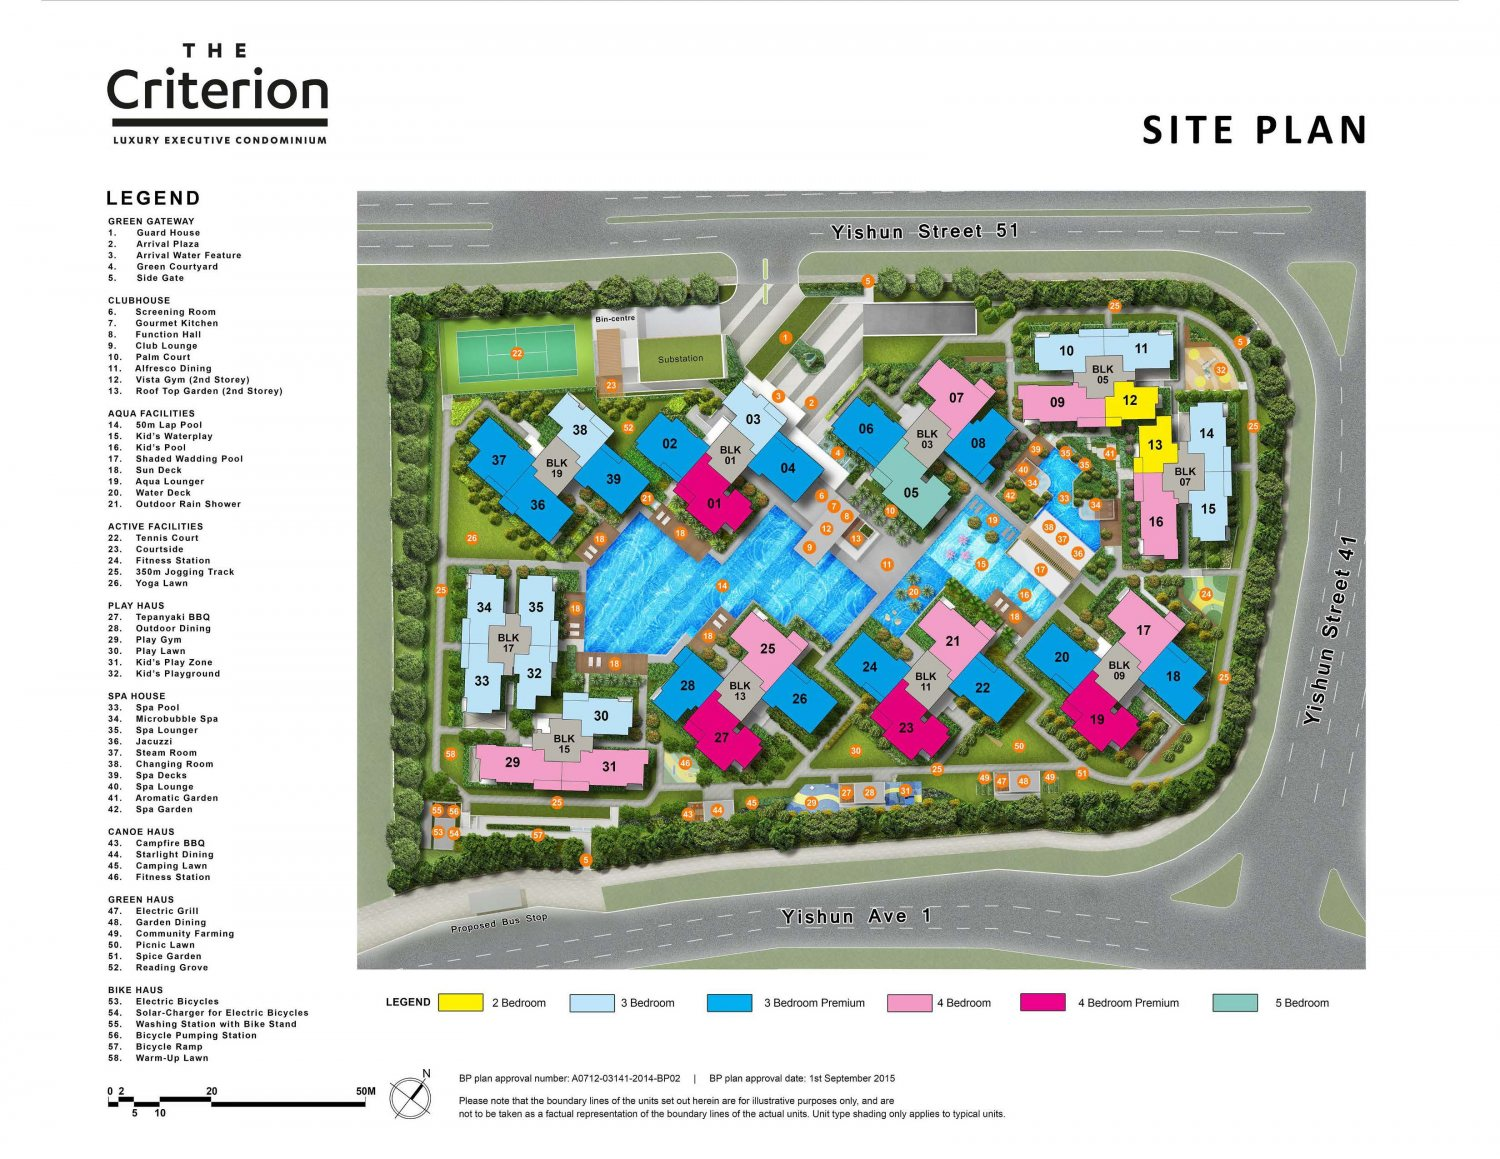 The Criterion Site Plan